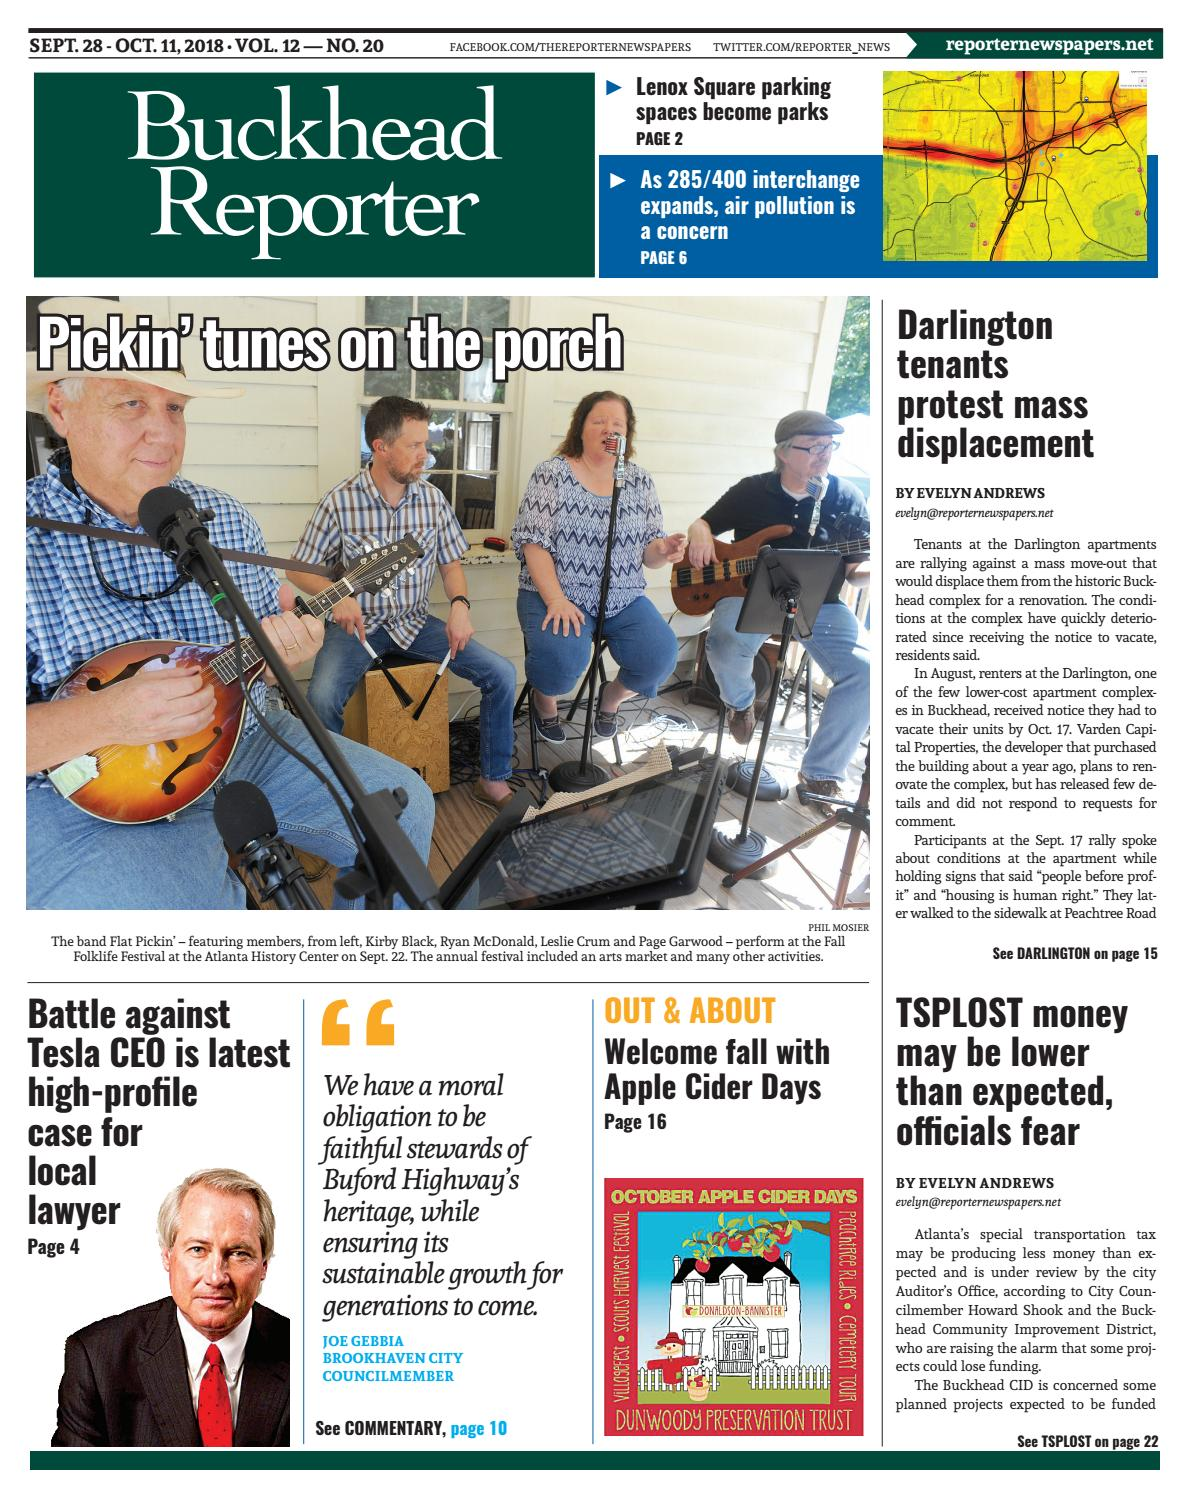 09-28-18 Buckhead Reporter by Reporter Newspapers - issuu